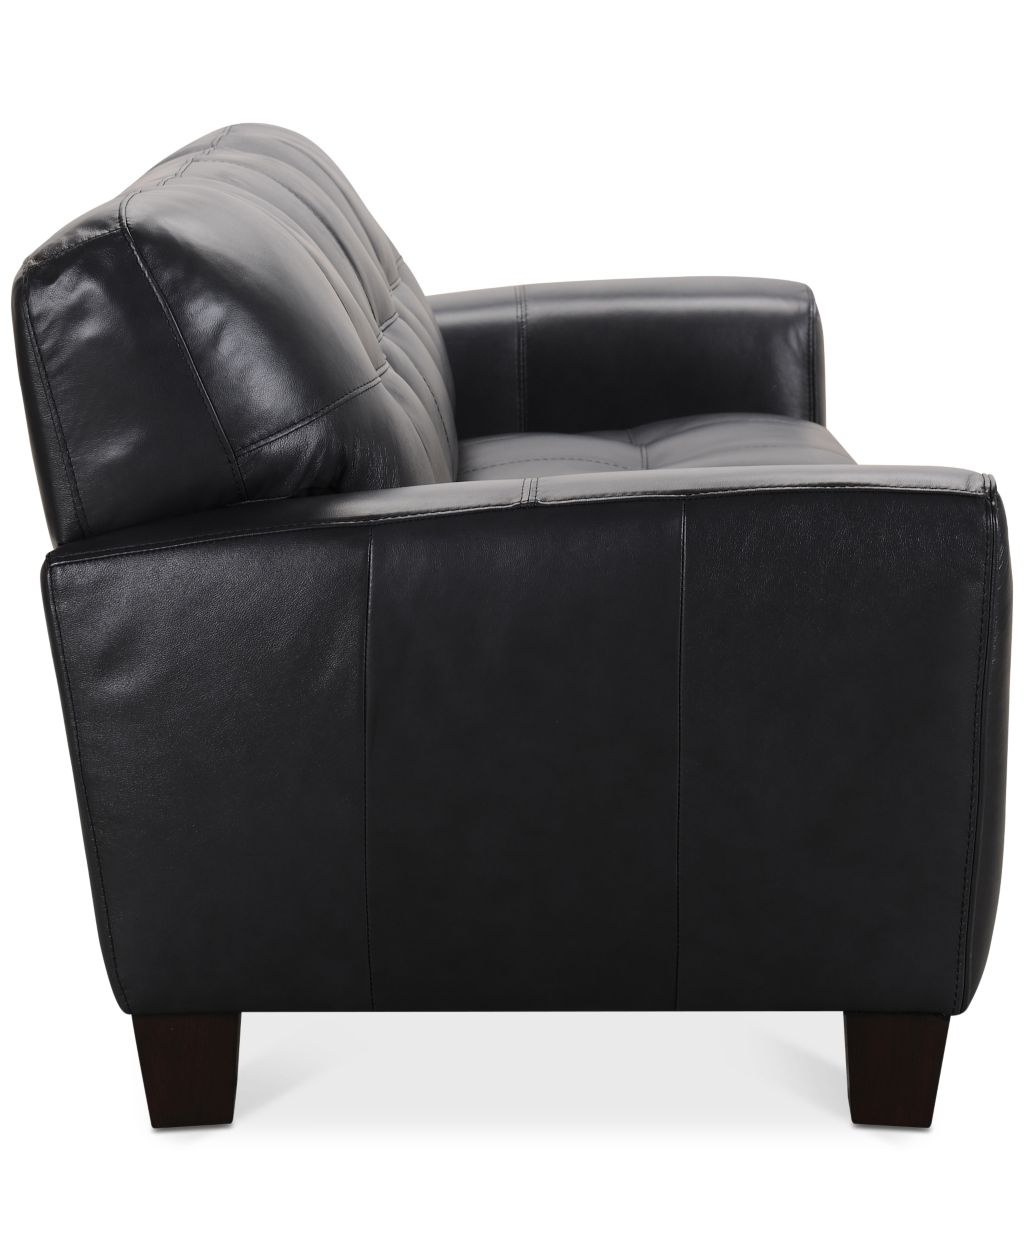 kaleb tufted leather sofa